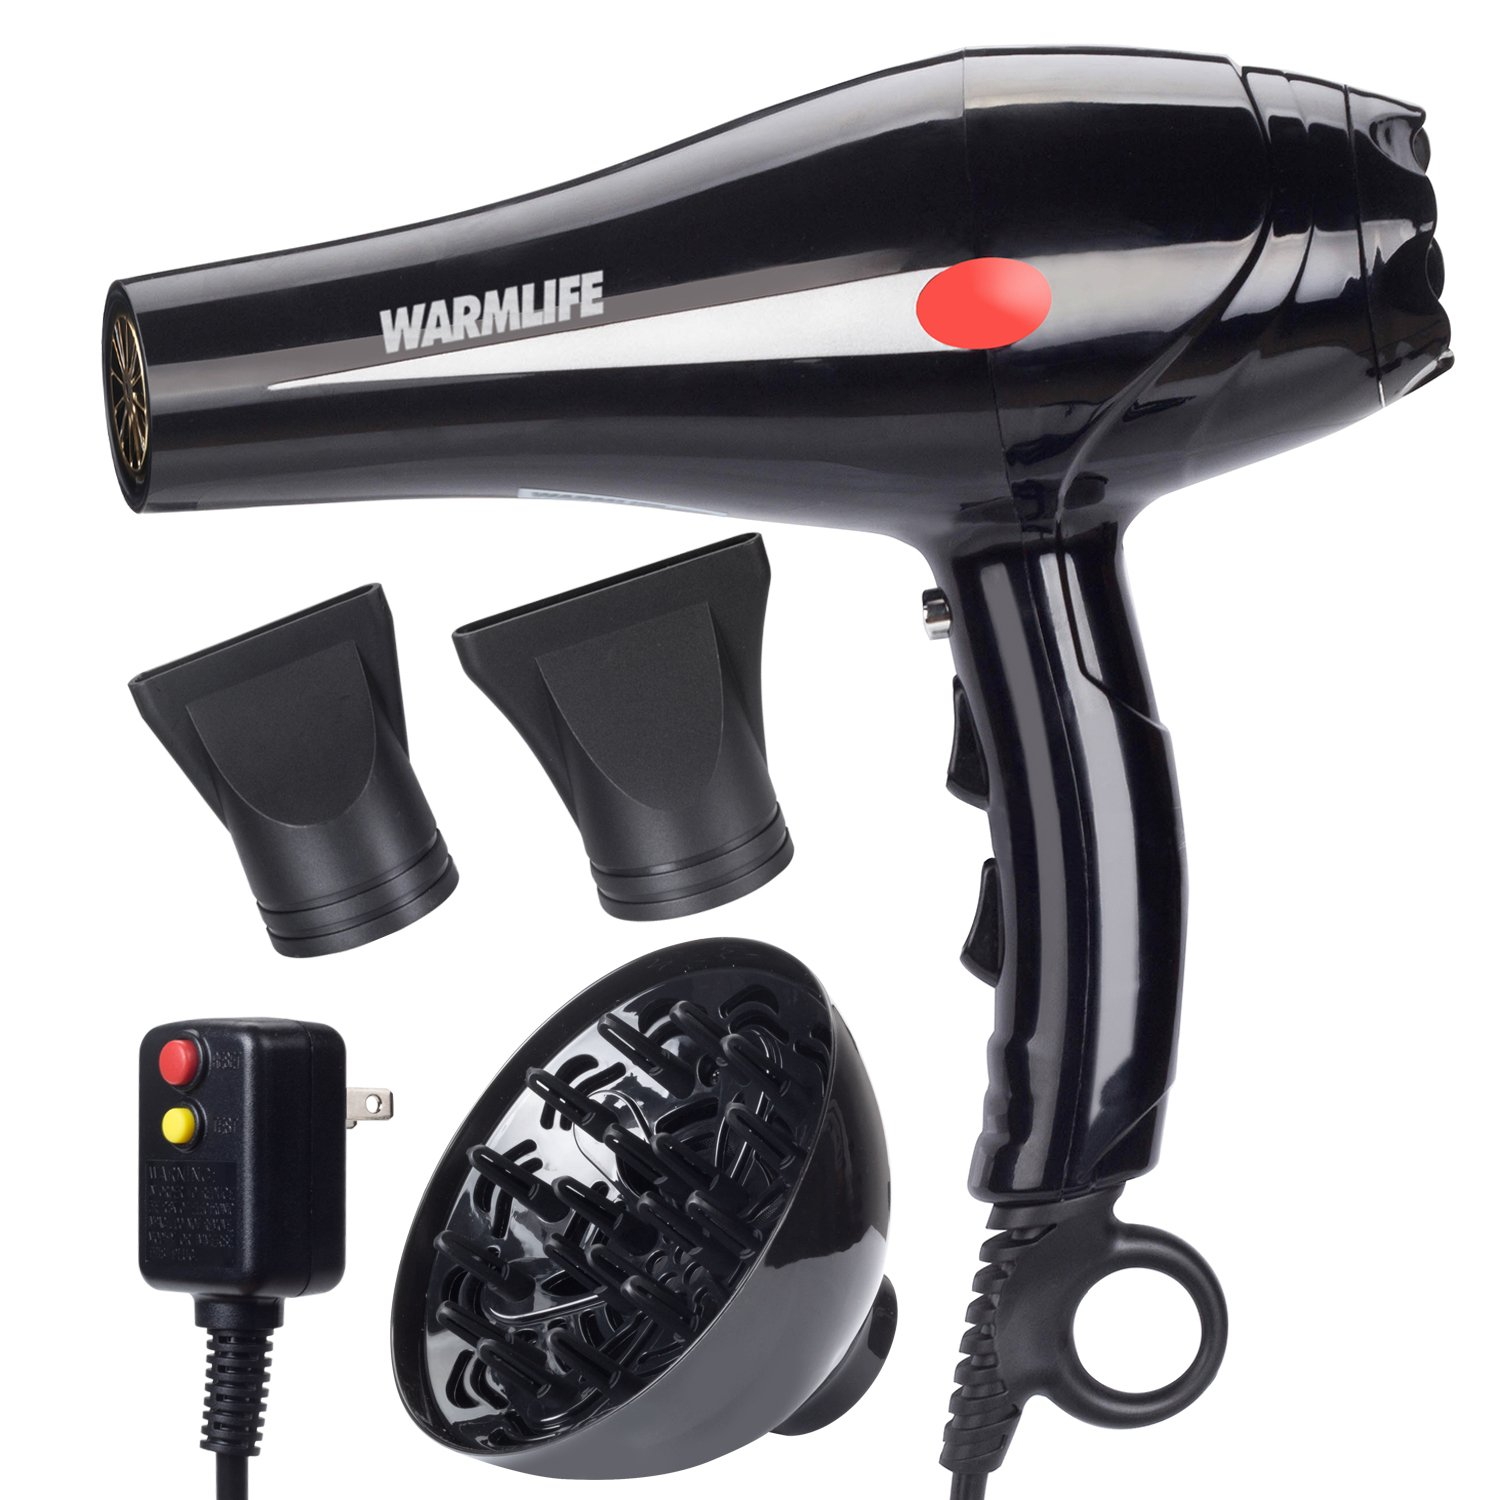 Warmlife 1875W Professional AC Motor Hair Dryer, Negative Ions Ceramic Ionic Blow Dryer with 2 Speed and 3 Heat Settings Cold Shot Button, with Concentrator & Diffuser Low Noise (Classical balck)